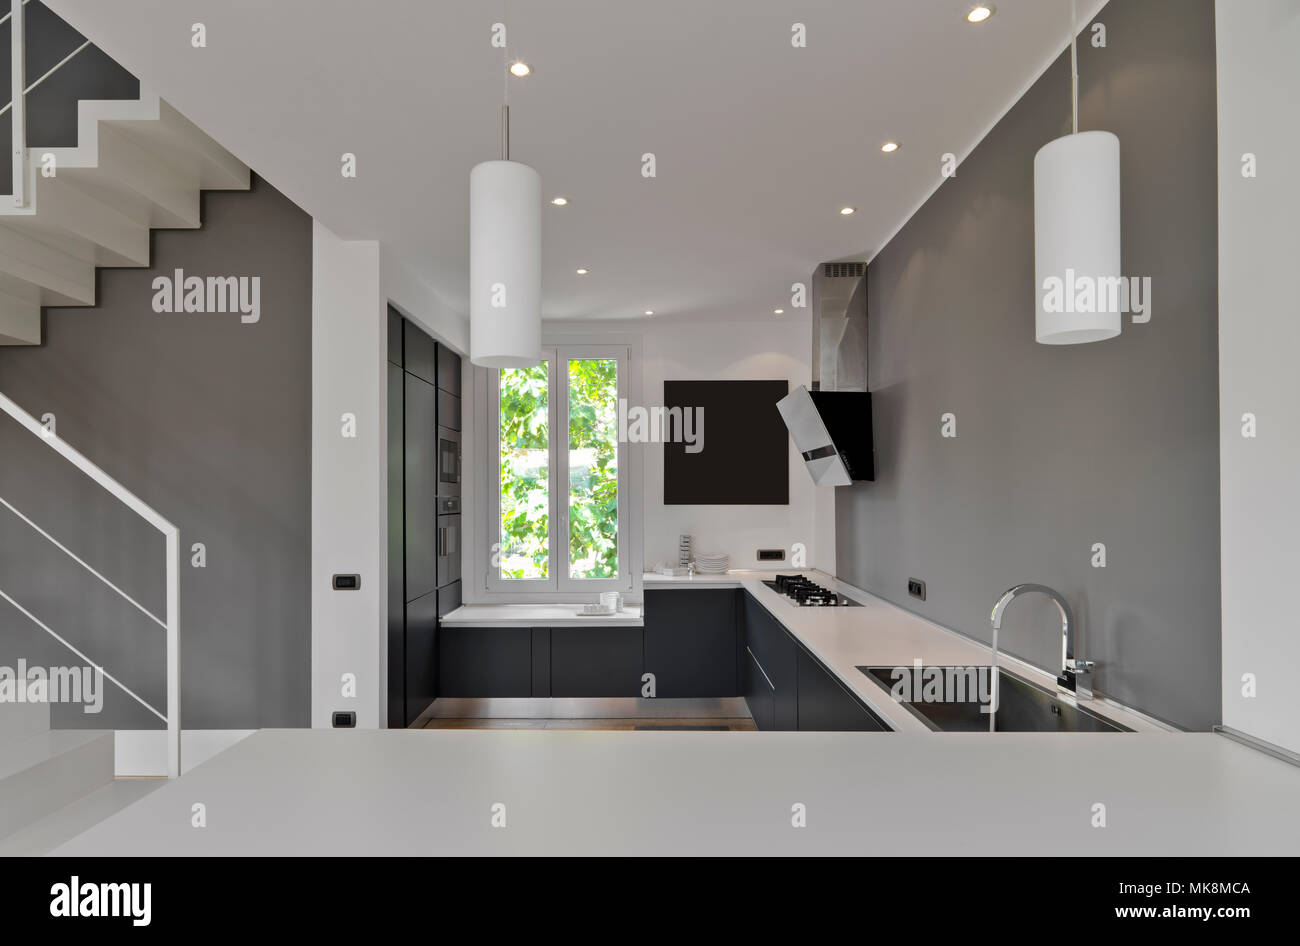 interiors shots of a modern kitchen in the foreground the integrated sink with his faucet - Stock Image